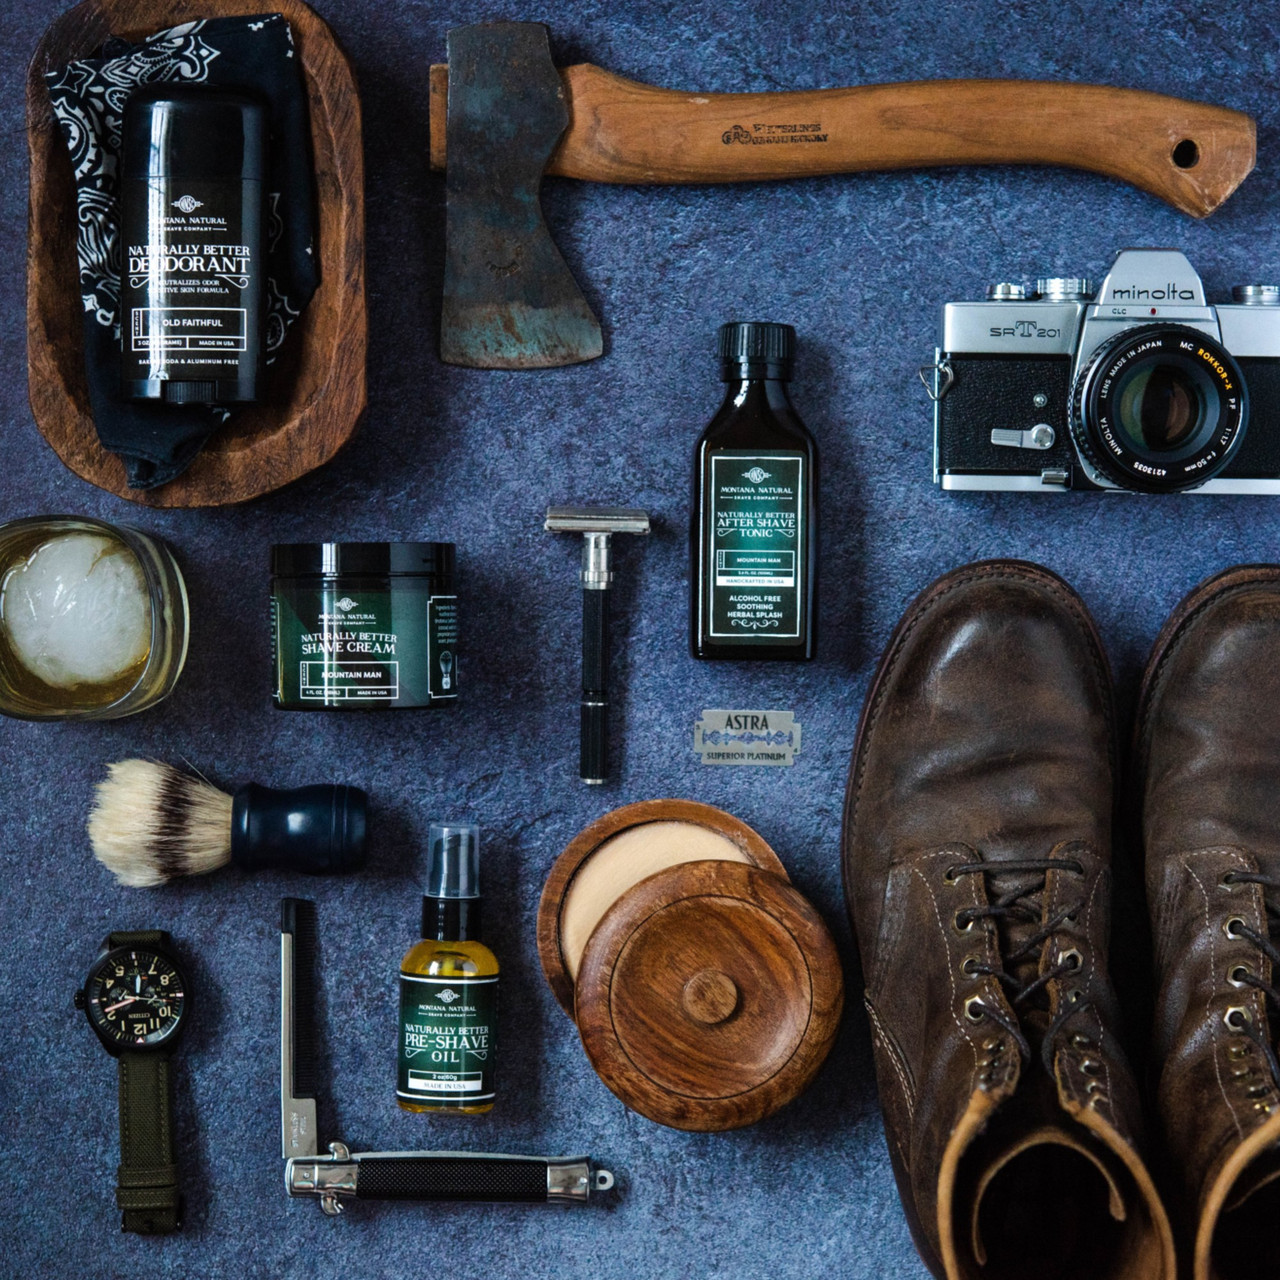 Unscented Old School Aftershave Tonic. Naturally Better  Alcohol Free Botanical Splash. Montana Natural Shave Company